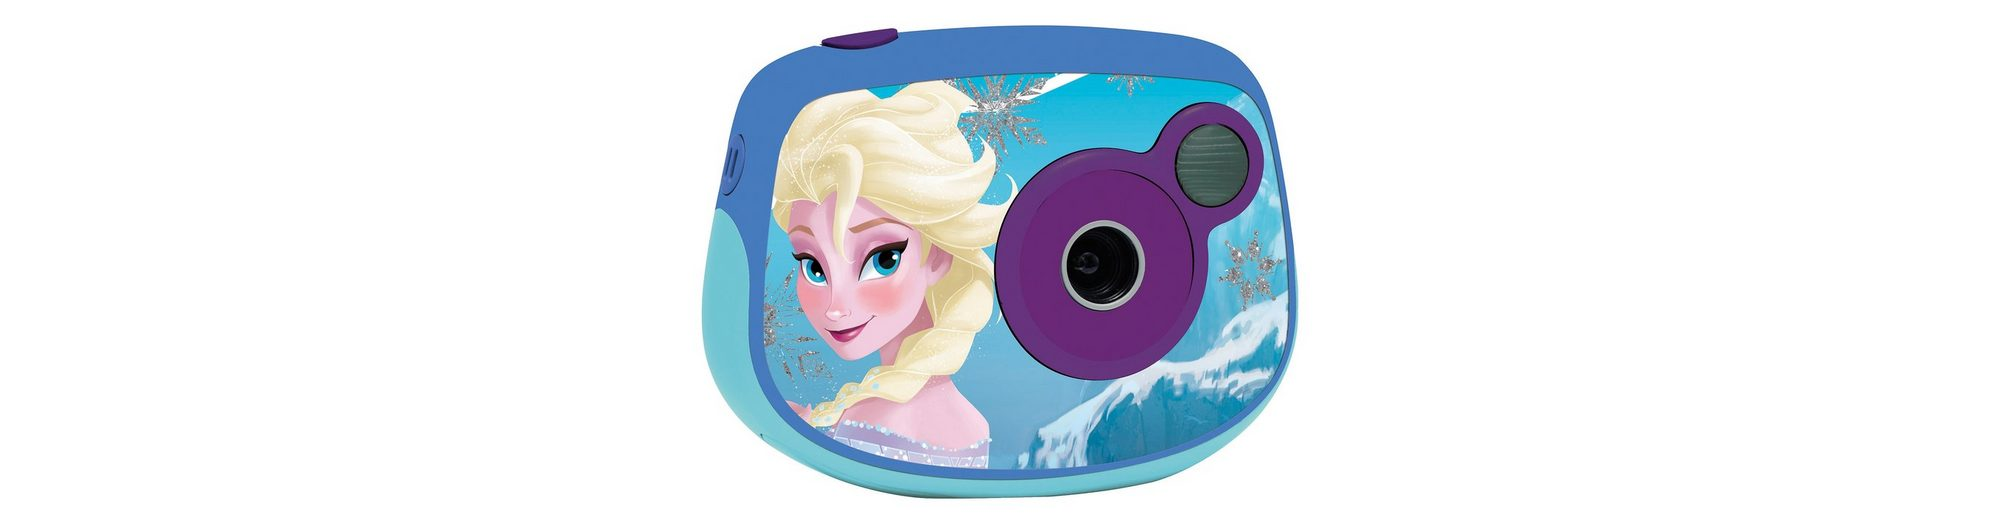 Digitalkamera, »Disney Frozen«, Lexibook